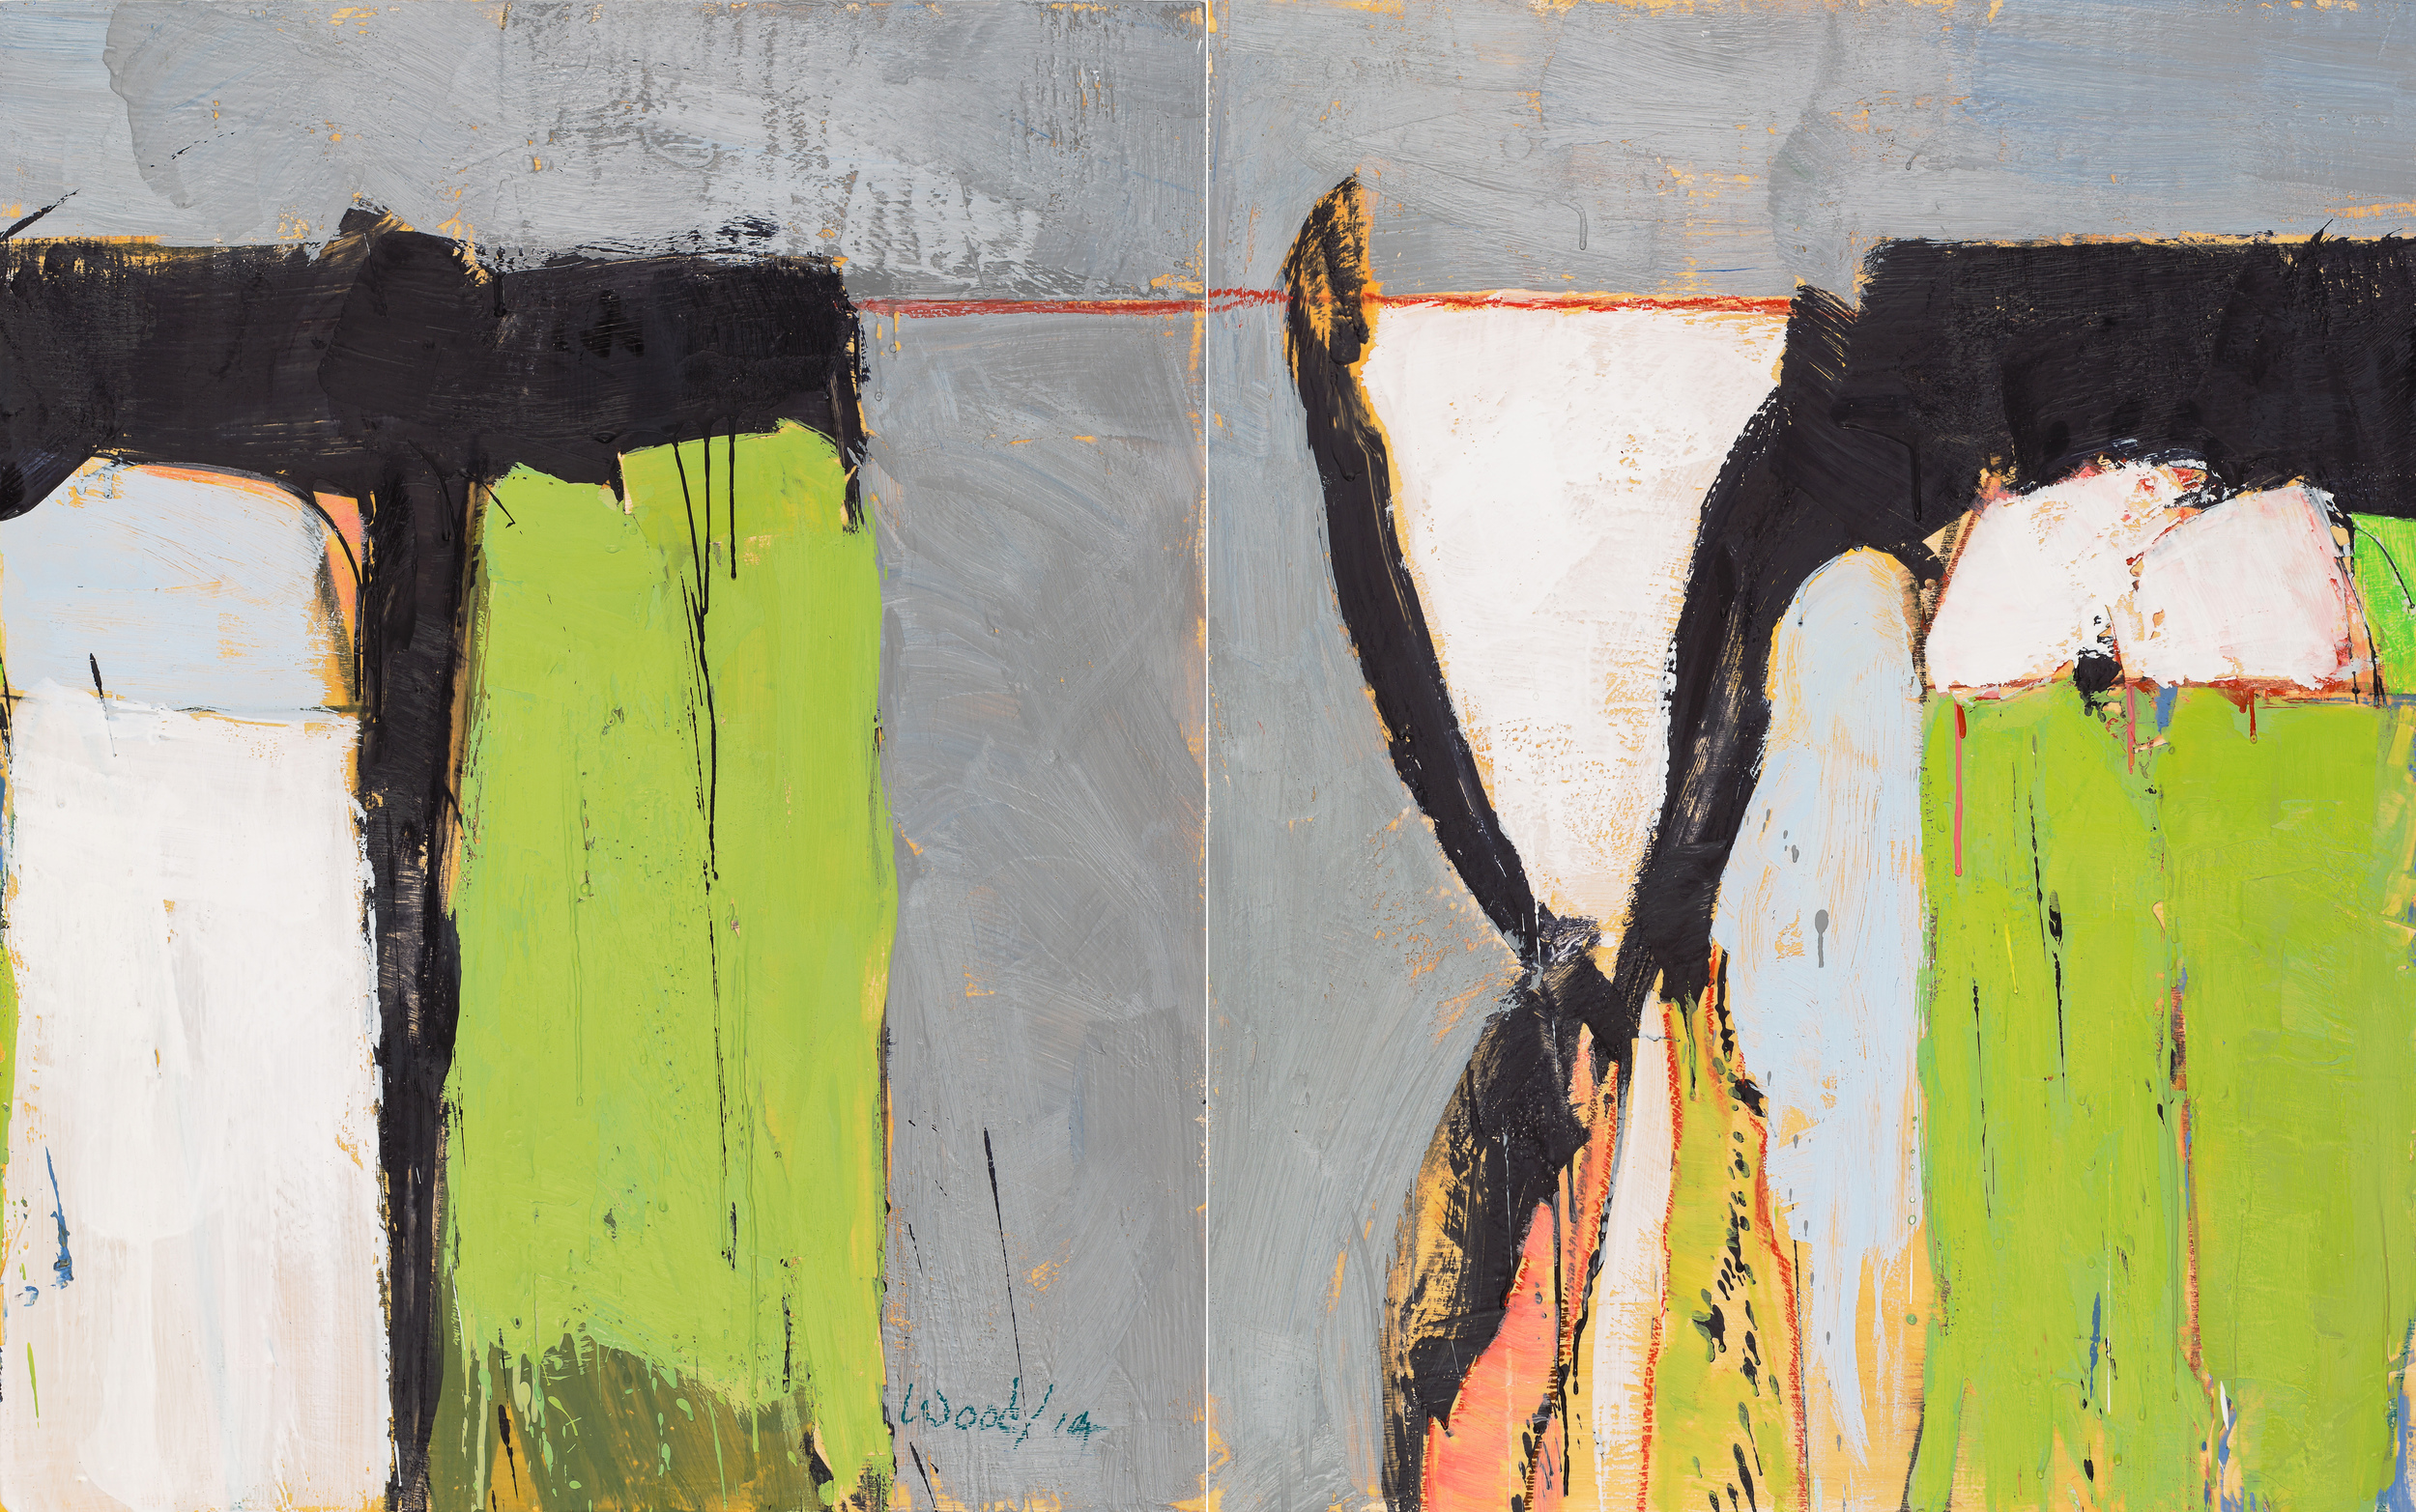 KW-066, Keith Wood, This Time 6, 2015, Encaustic on Panel, 48 x 30, $2,750